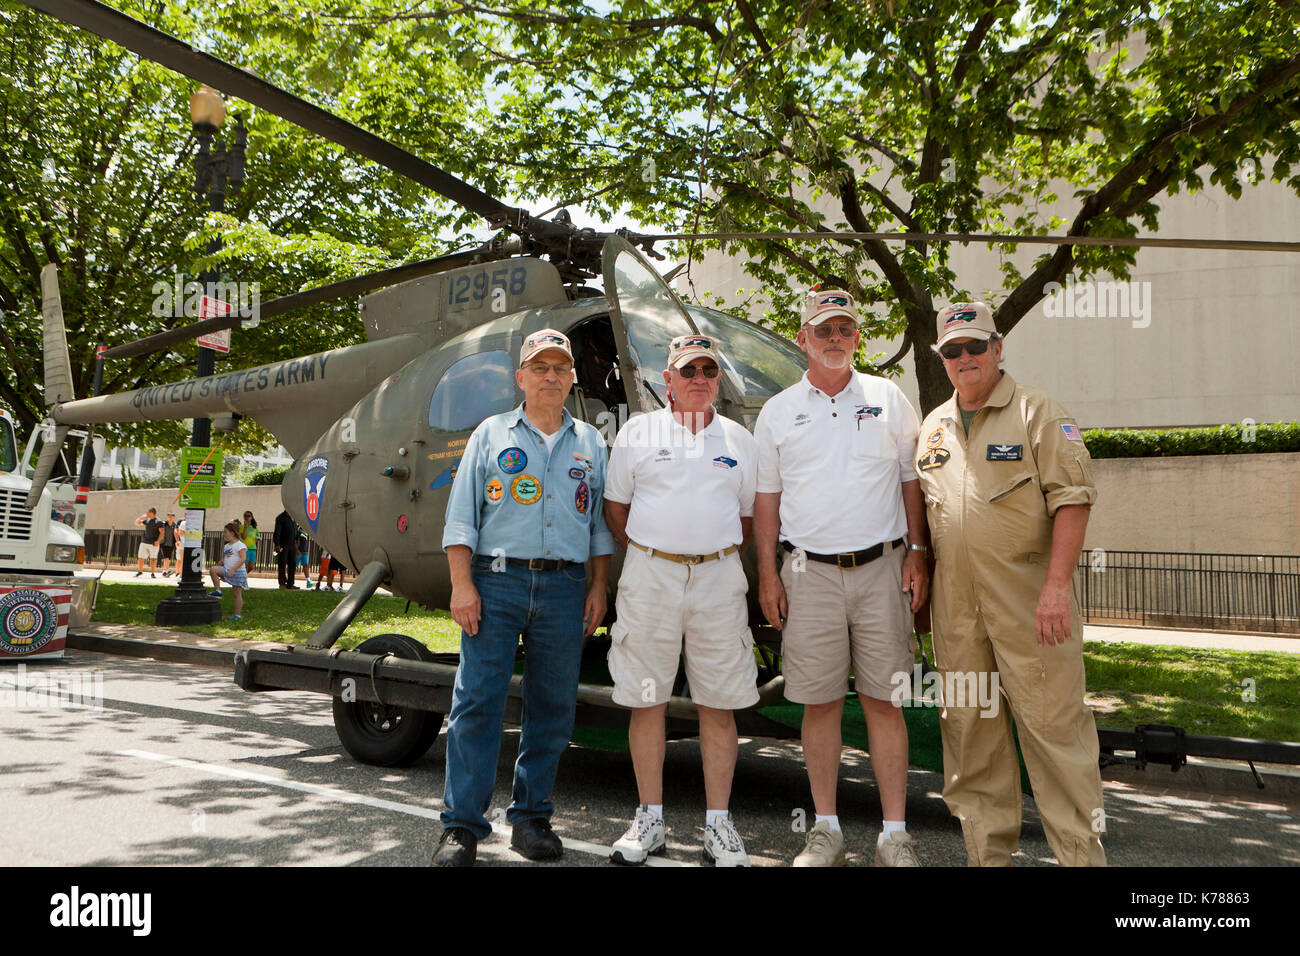 North Carolina Helicopter Pilots Association (NCVHPA) participating in the National Memorial Day parade - Washington, DC USA - Stock Image